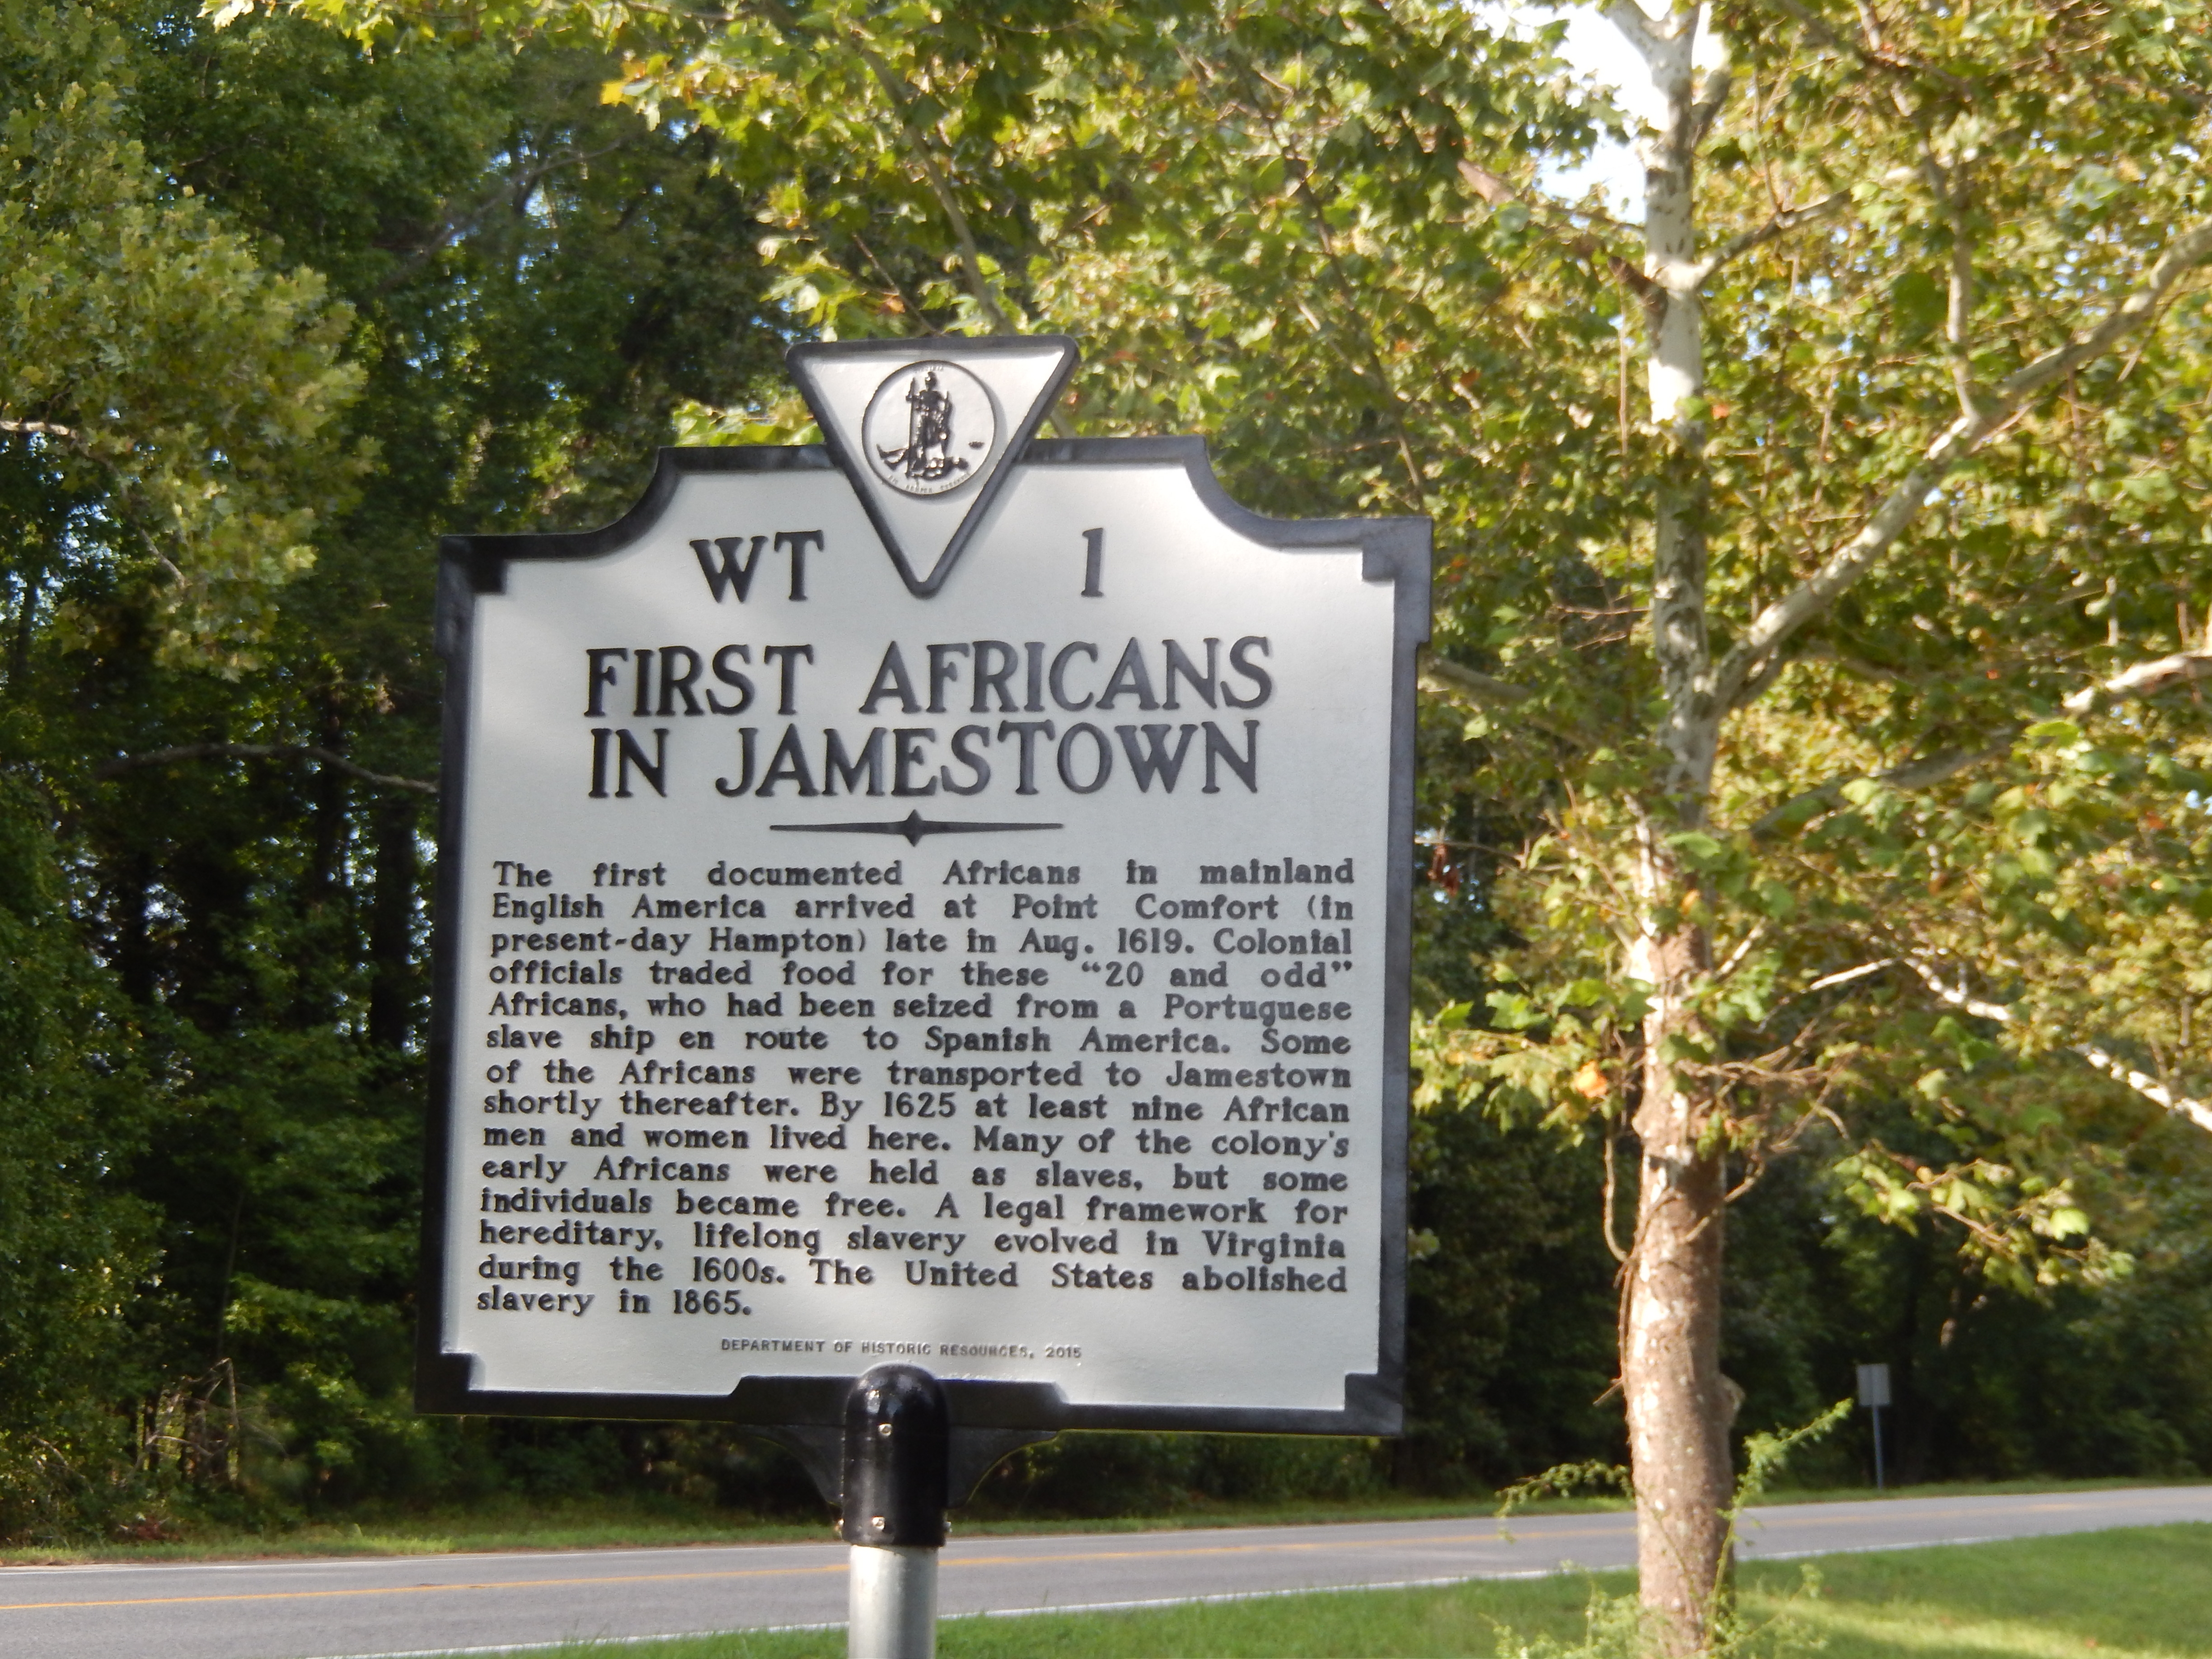 First Africans in Jamestown marker, by Don Morfe on HMDB.org (reproduced under Fair Use)